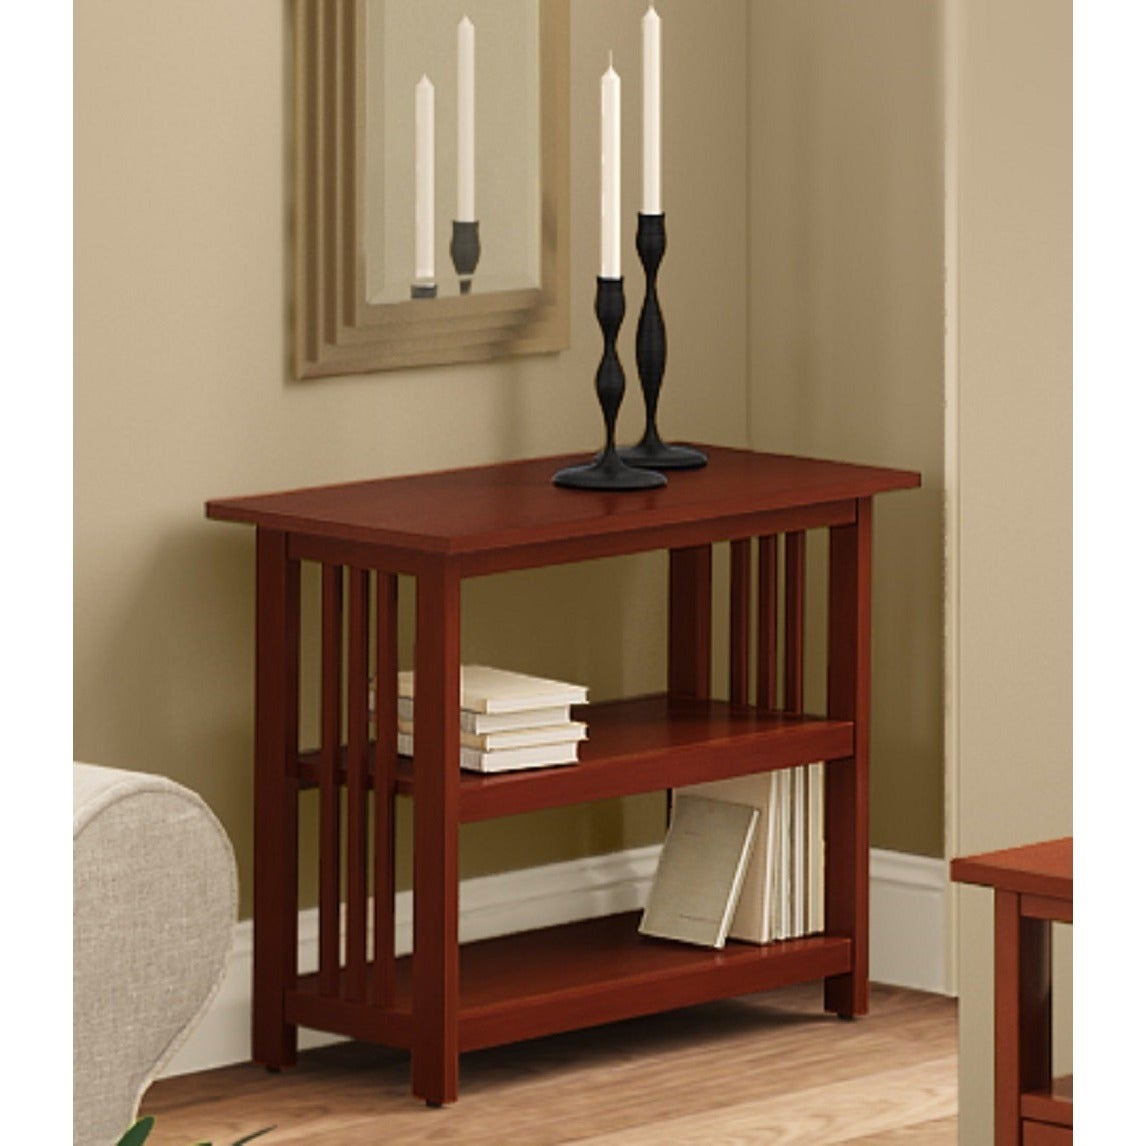 Copper Grove Boutwell Clic Mission Style Under Window Bookshelf On Free Shipping Today 20461252